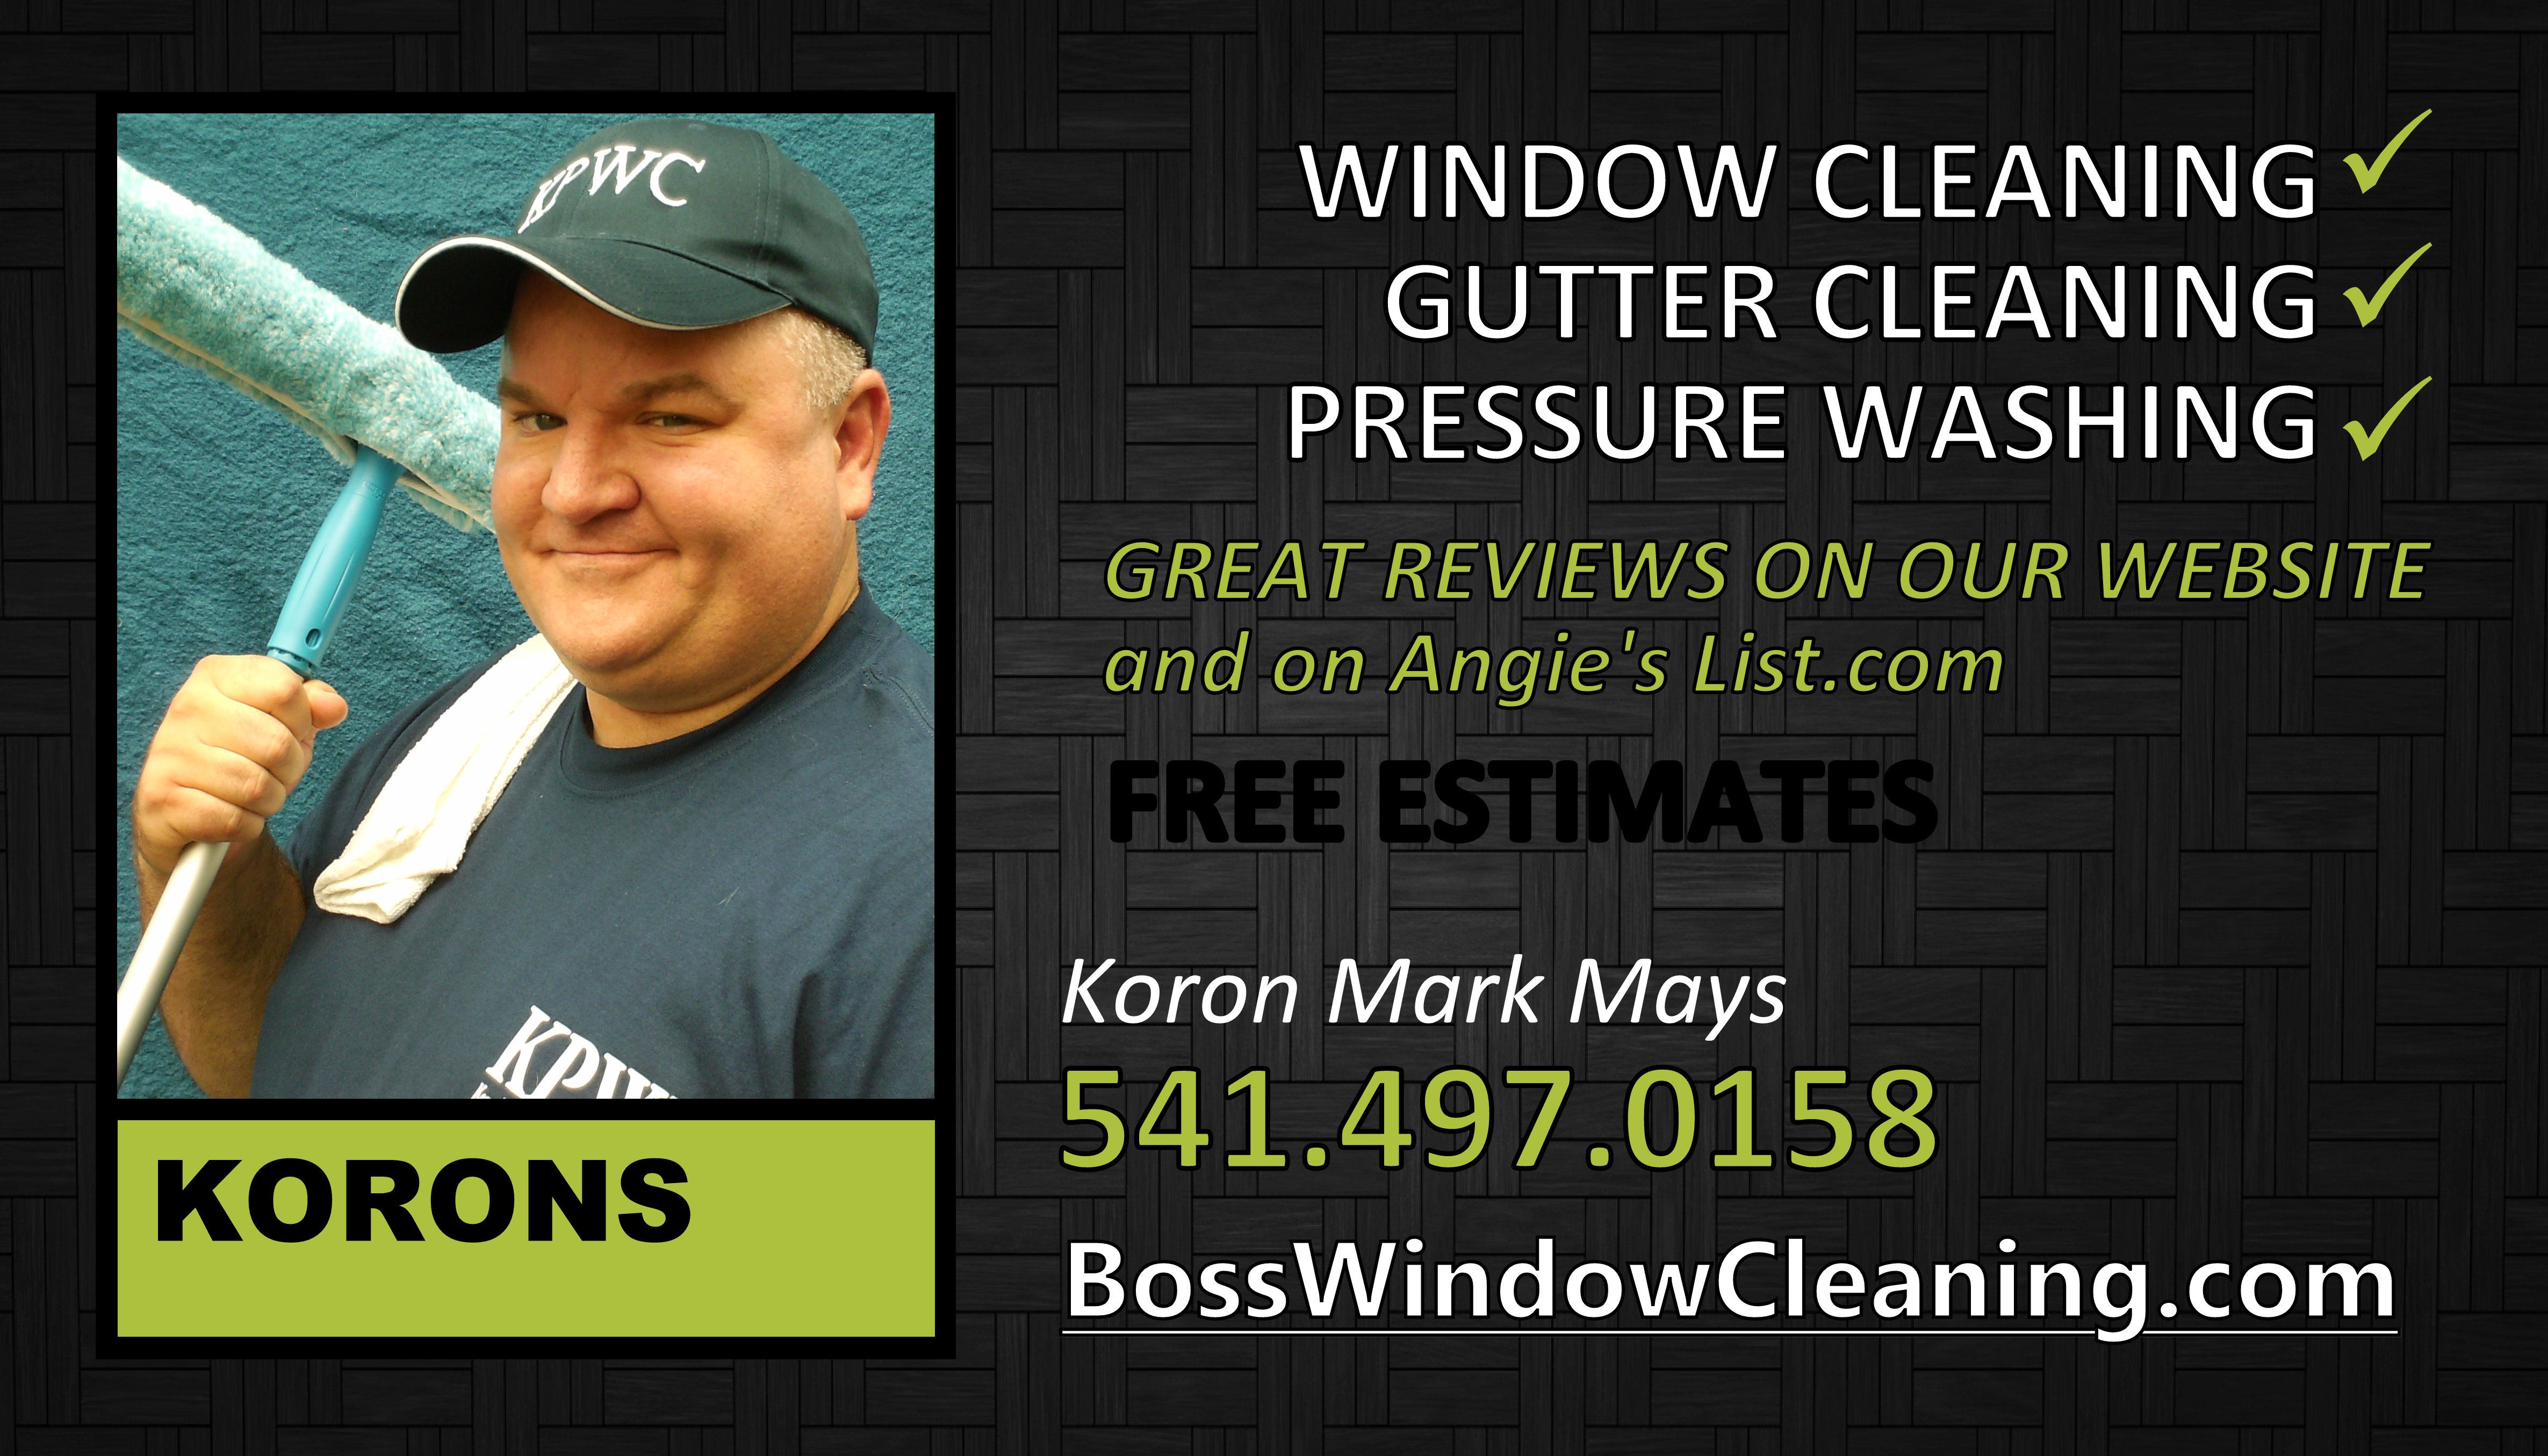 Window Cleaning Business Card Cleaning Gutters Cleaning Business Cards Window Cleaner